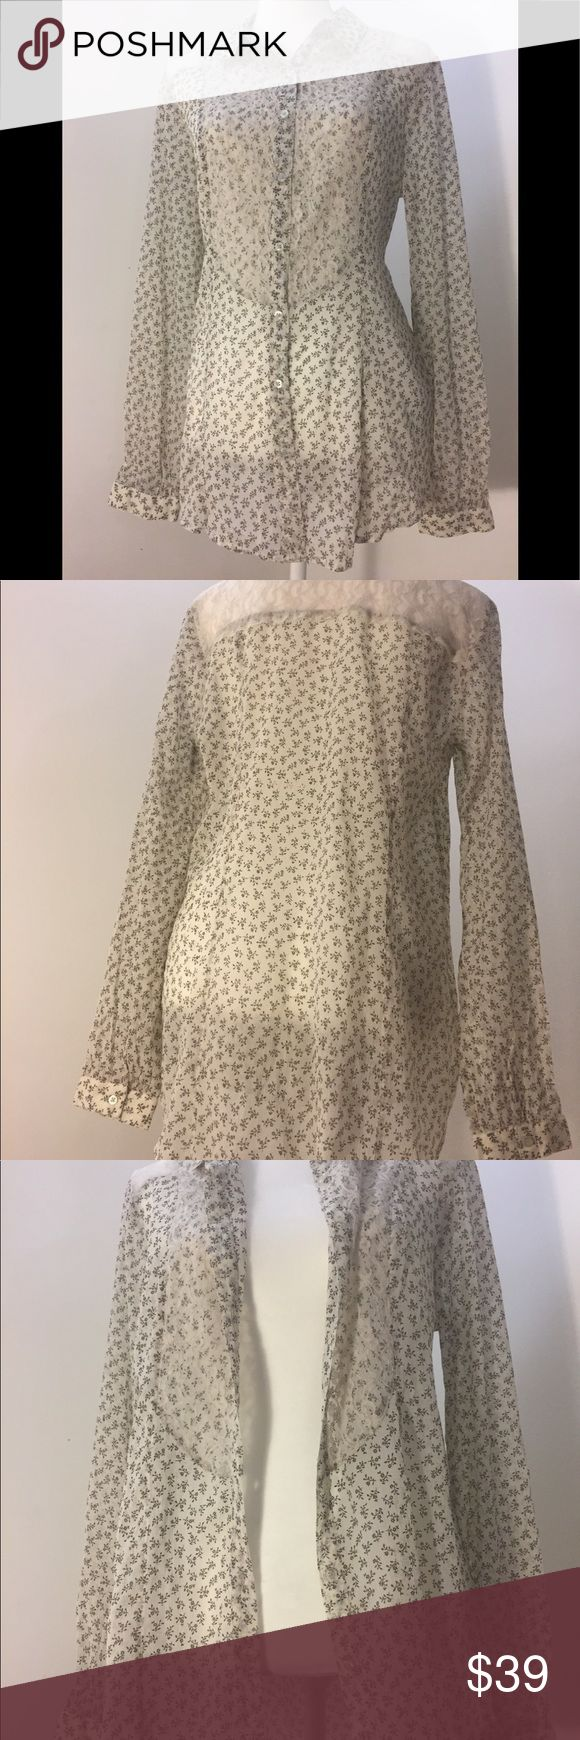 Free People Floral/Lace Button Up Long Sleeve New with Tag: Free People Floral & Lace Button Up Long Sleeve Shirt  No holes, no stains Smoke Free Home  ***Provided measurements in picture are for reference only and are not exact. Please reference brand website for details on sizing. Free People Tops Button Down Shirts